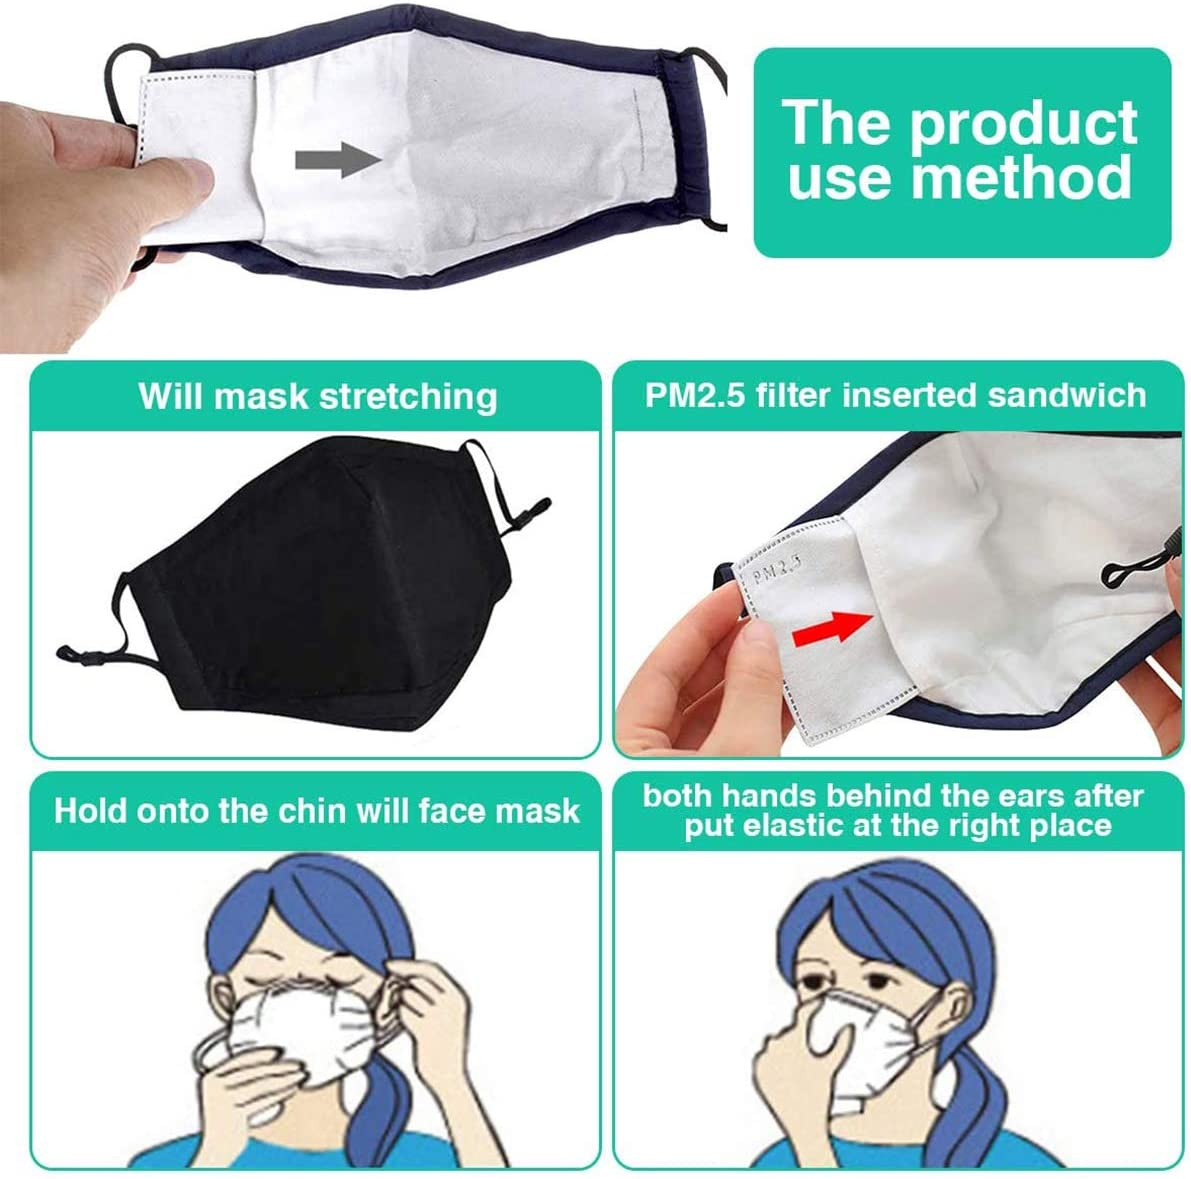 5 Layers Replaceable Anti Haze Mask Filters 10 PCS PM2.5 Filter Activated Carbon Filter Insert Ready Stock Protective Mouth Filter for Outdoor